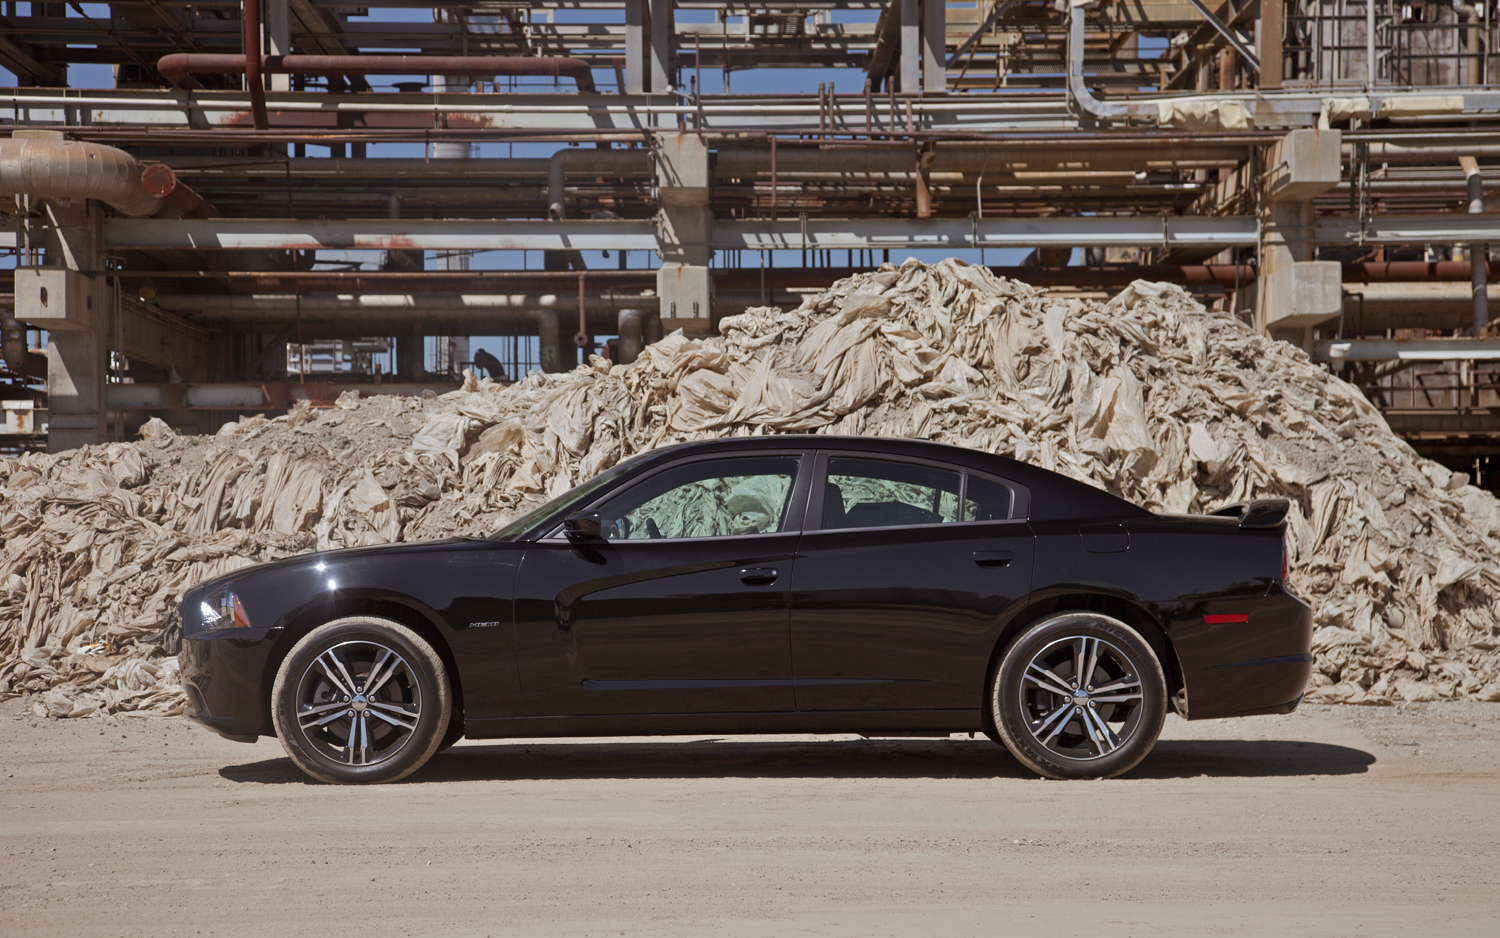 2013 Dodge Charger #21